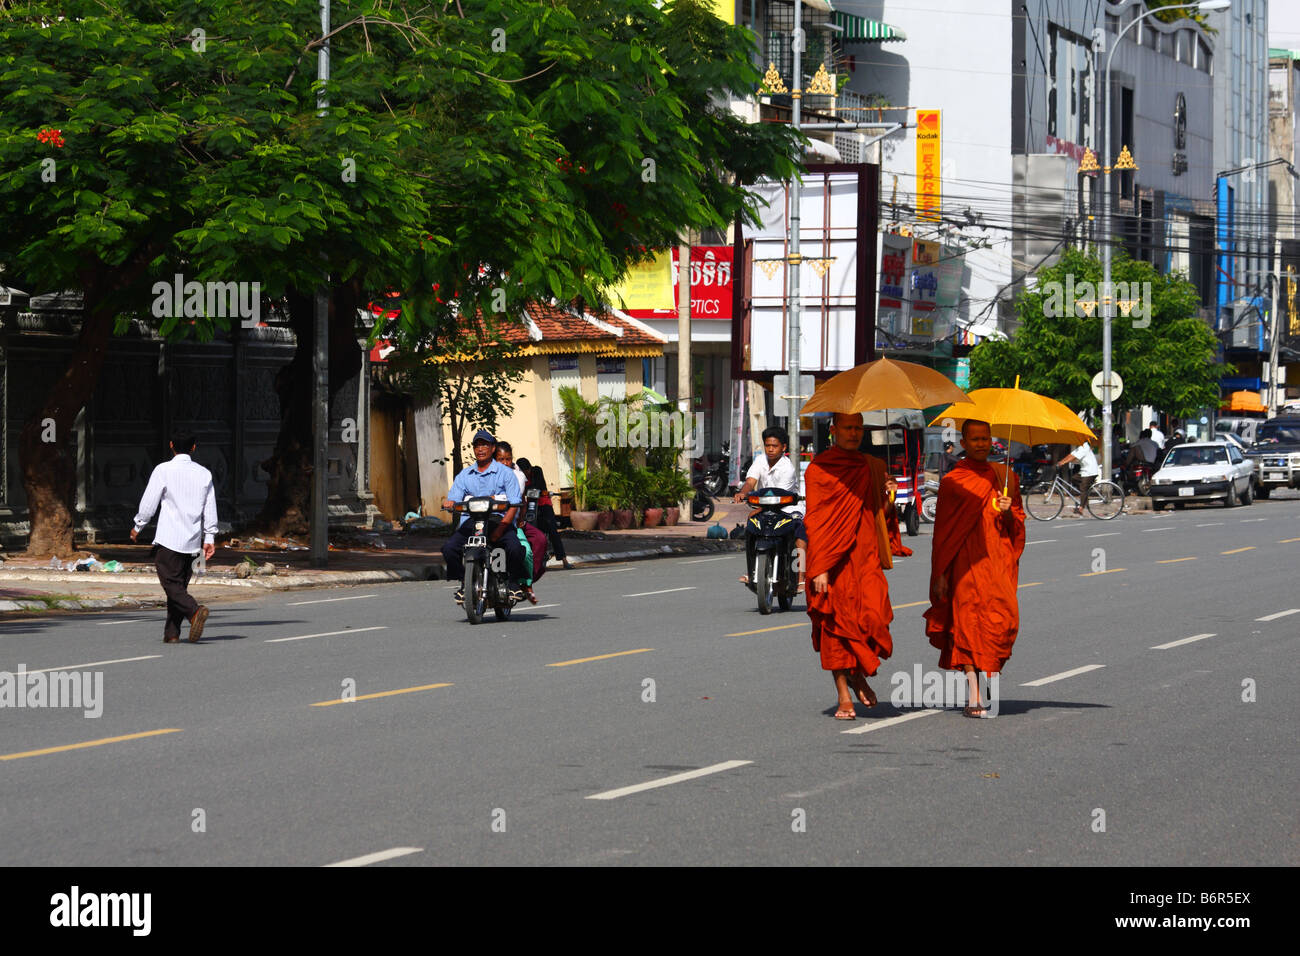 Two (2) buddhist monks in saffron robes walking with umbrellas in the streets of Phnom Penh, Cambodia - Stock Image